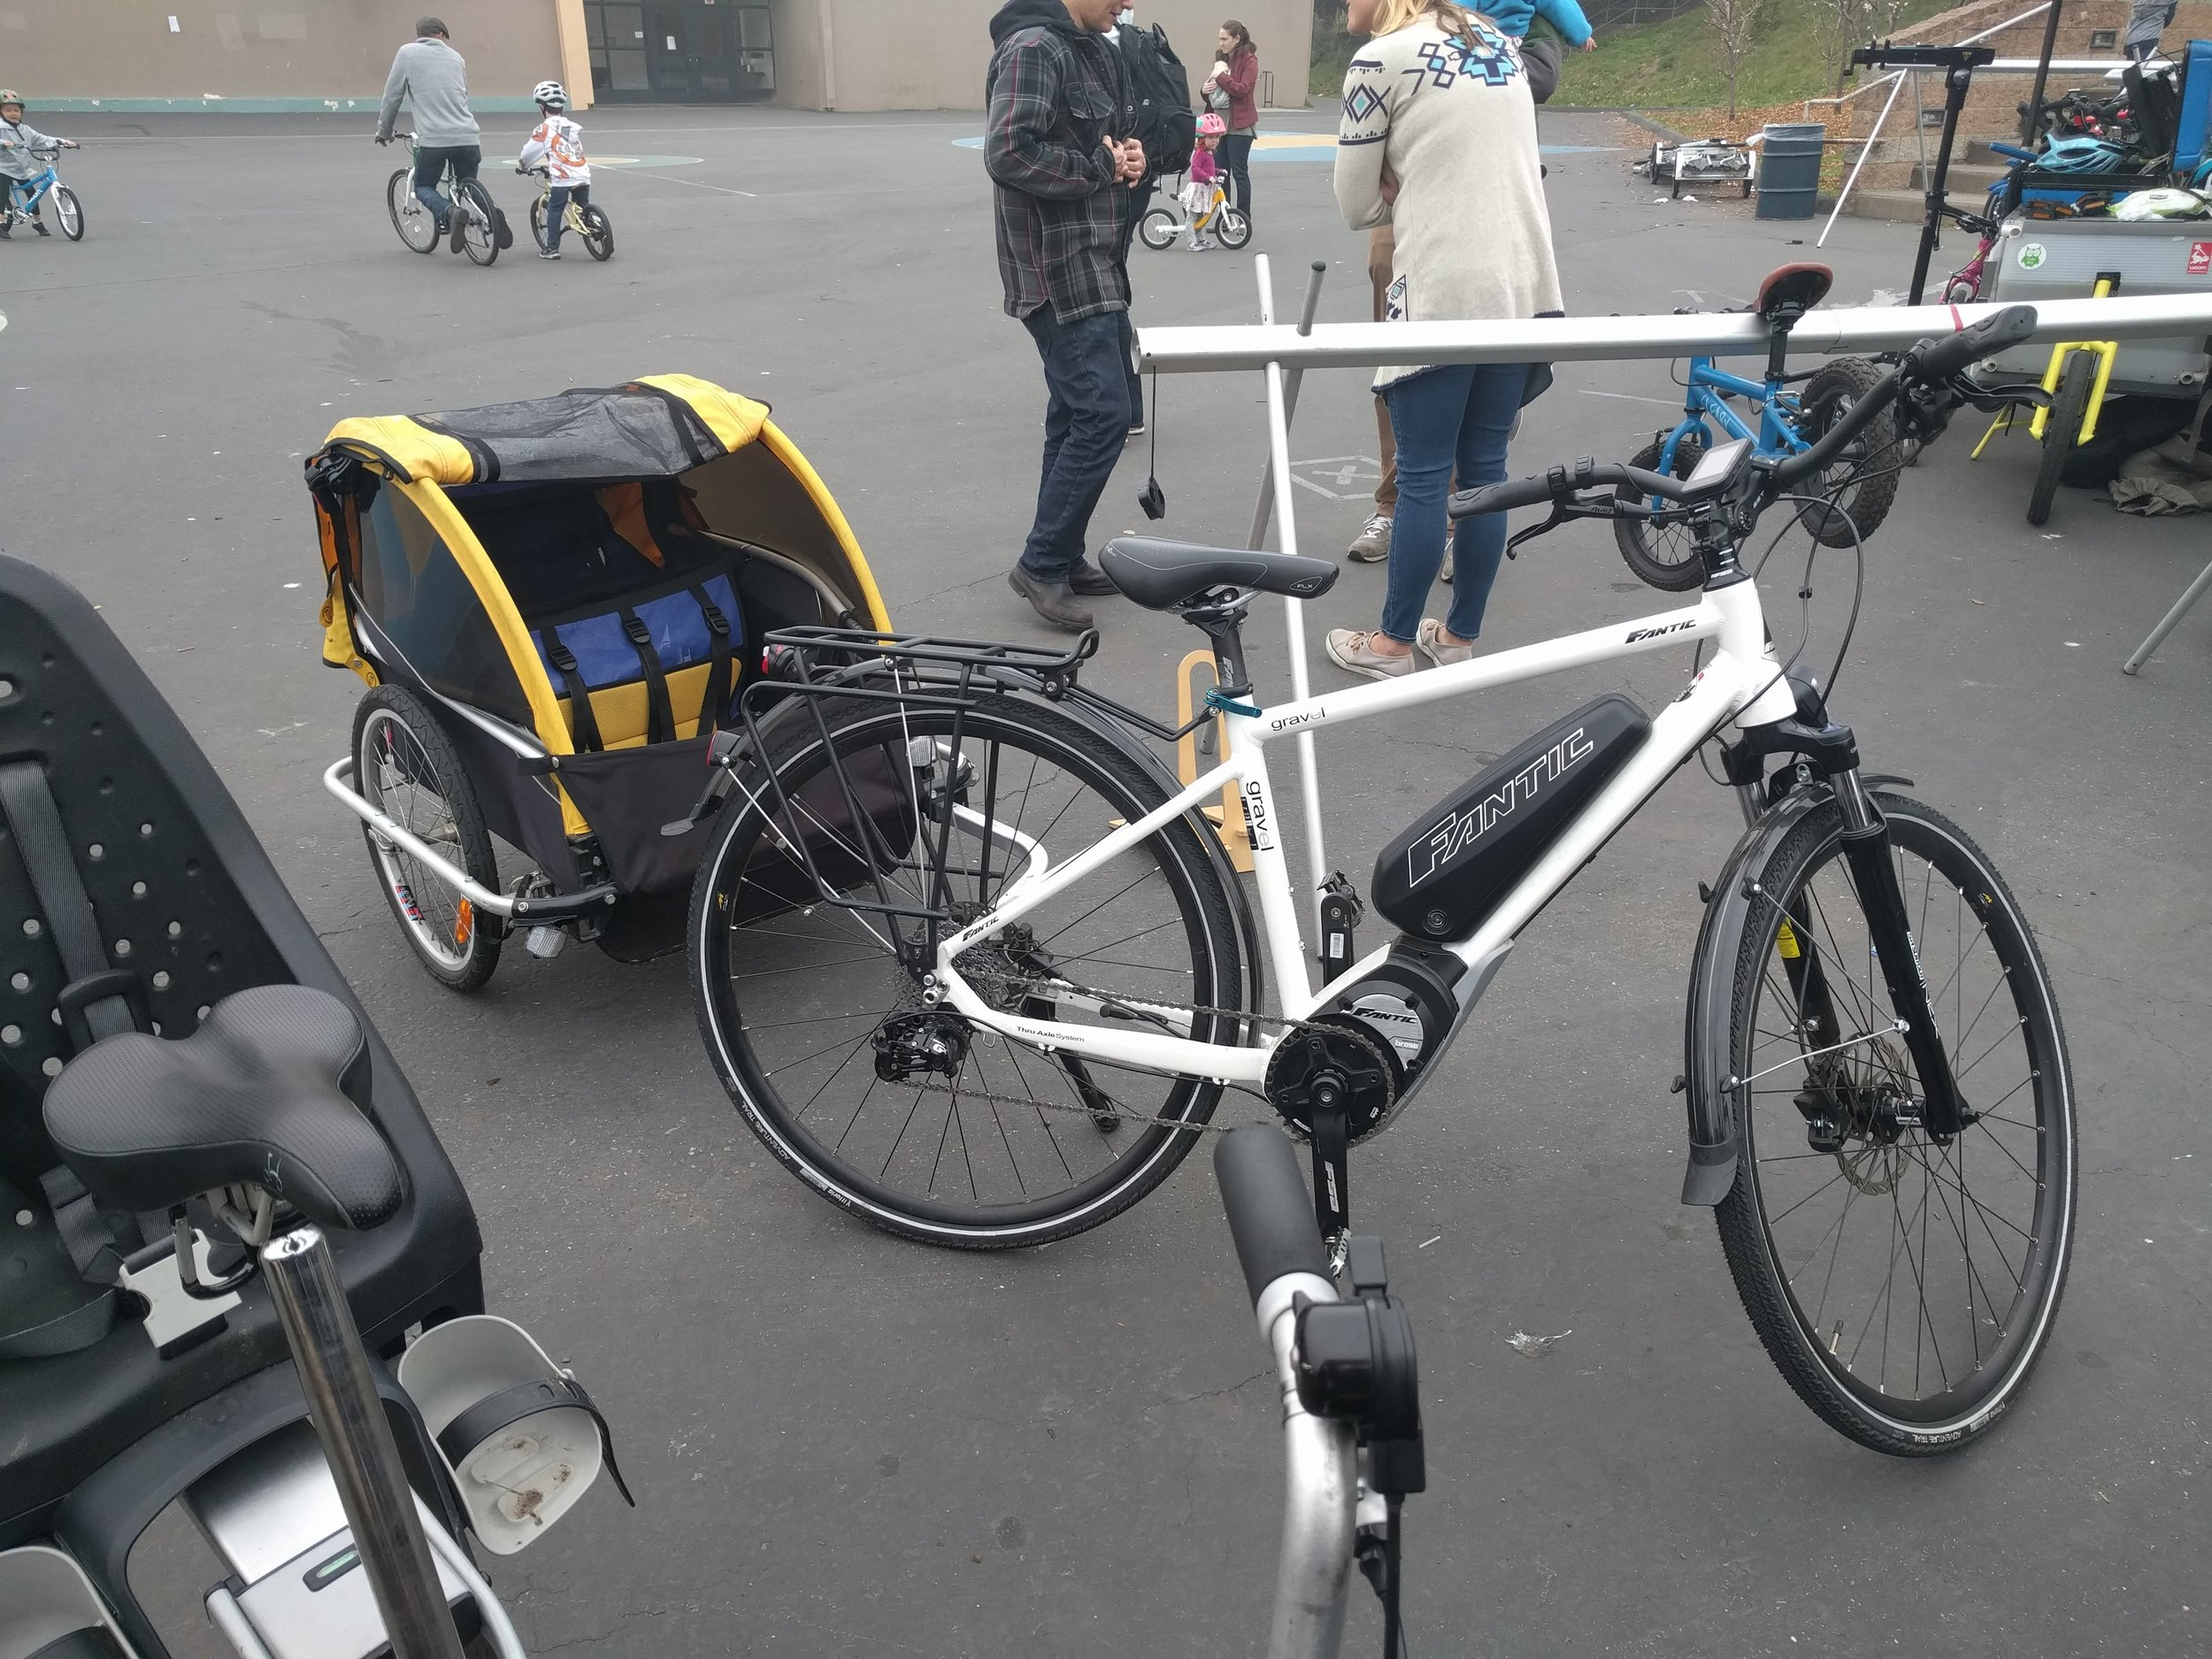 A two-kid trailer attached to a bike with electric-assist wheel and a front disc brake. This is well-suited to Bay Area hills!